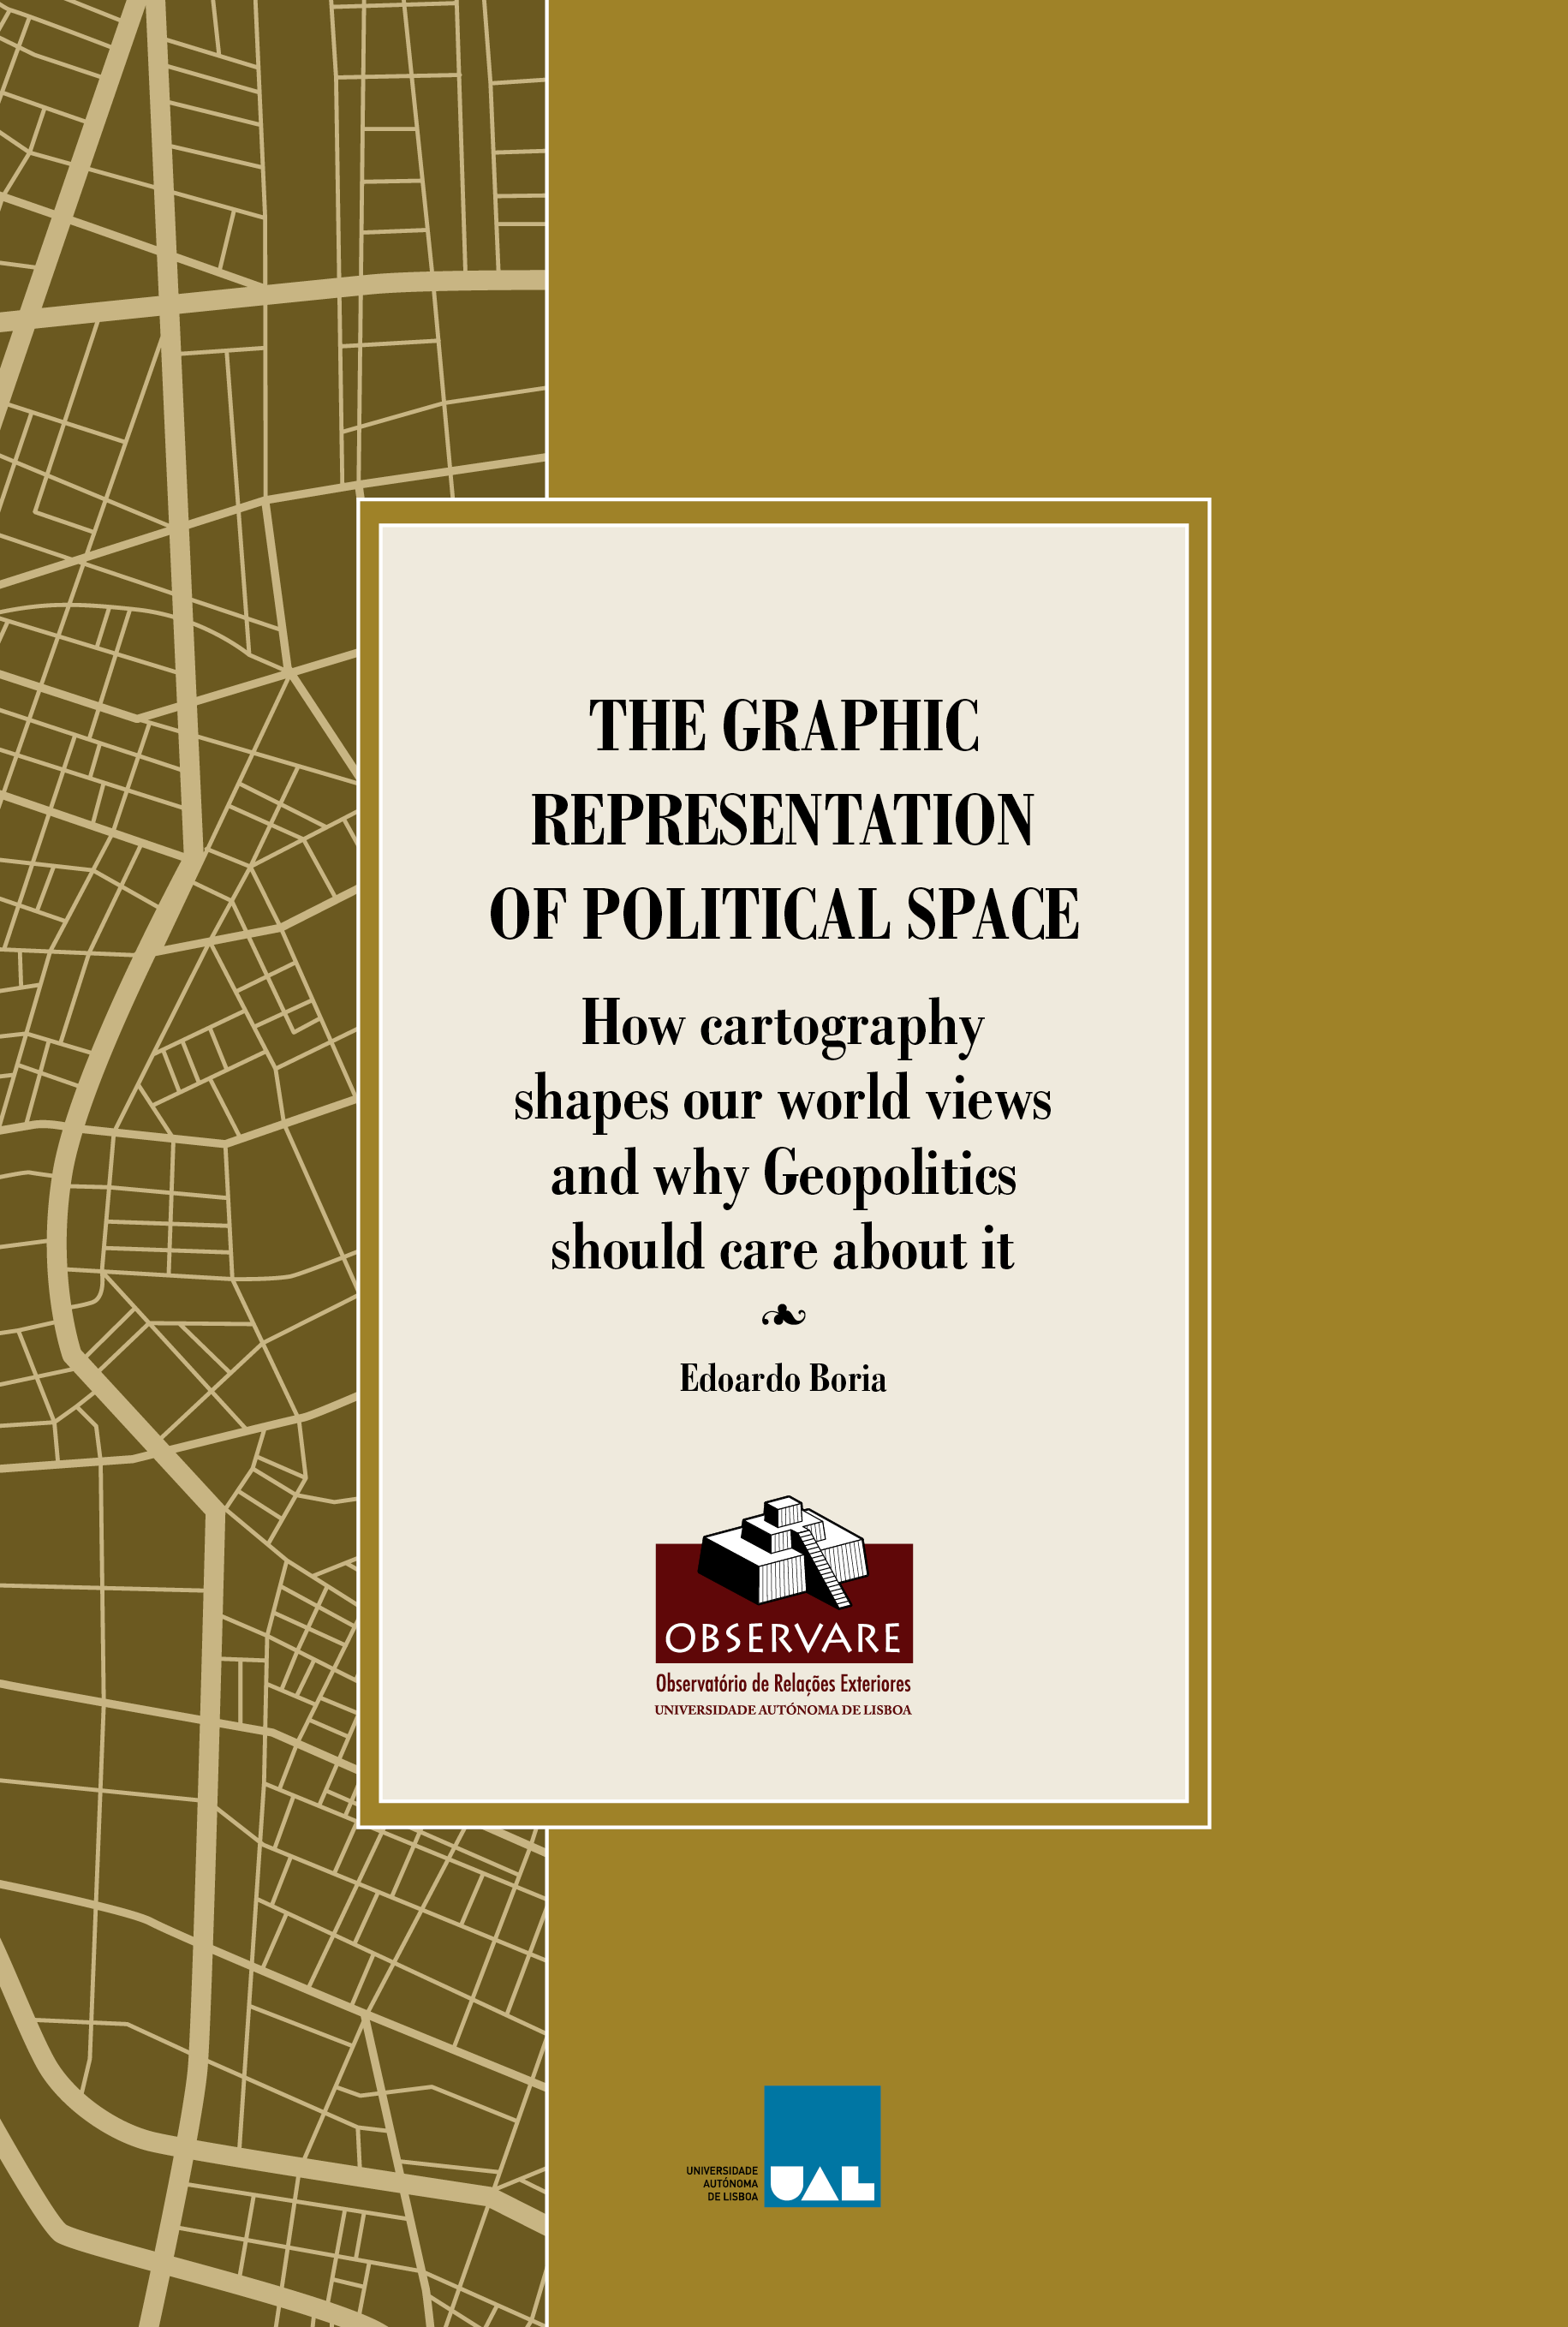 The graphic representation of political space: how cartography shapes our world views and why Geopolitics should care about it.